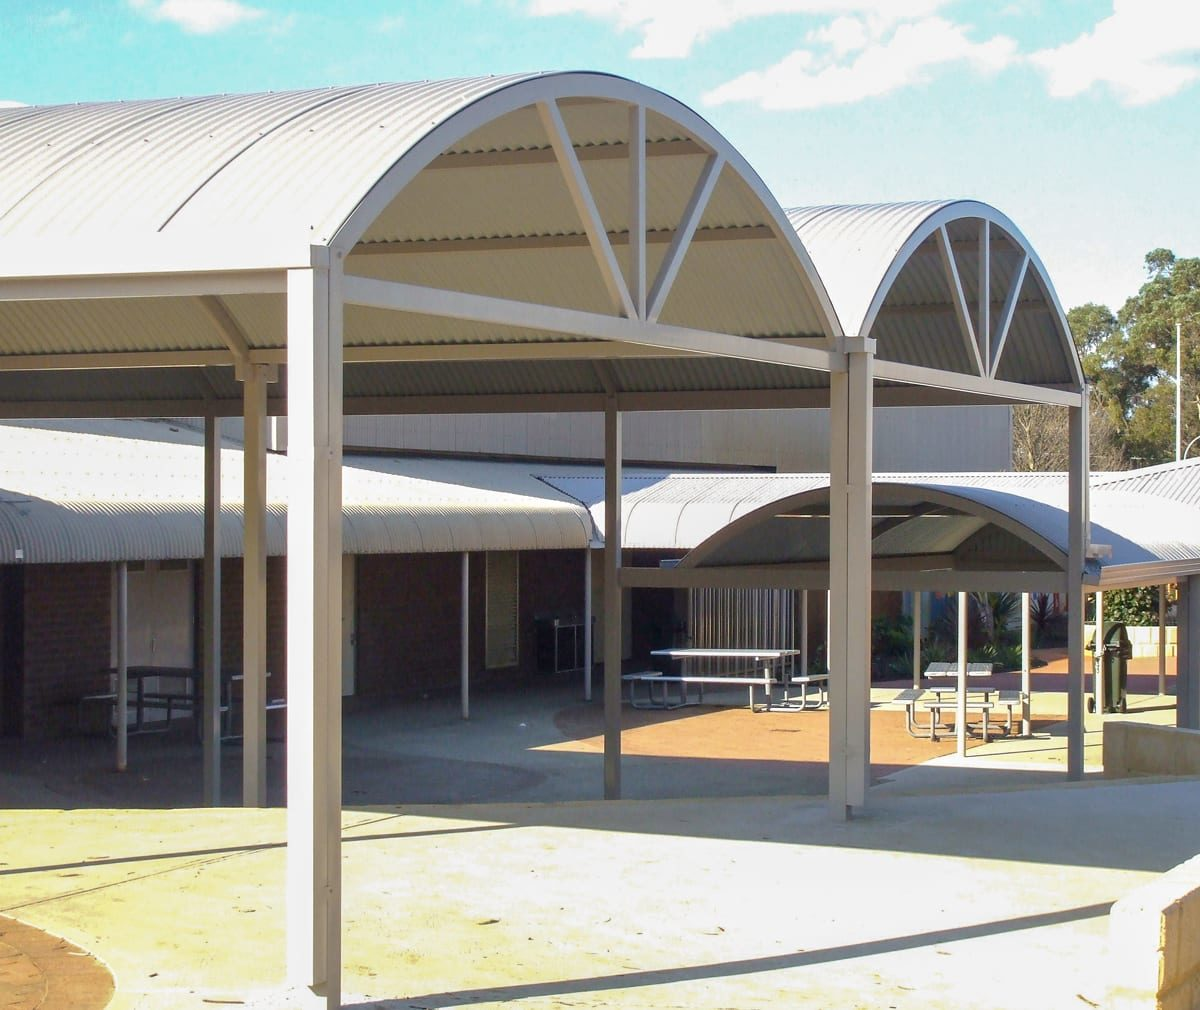 Woodvale Eddystone Wanneroo Dome Patio